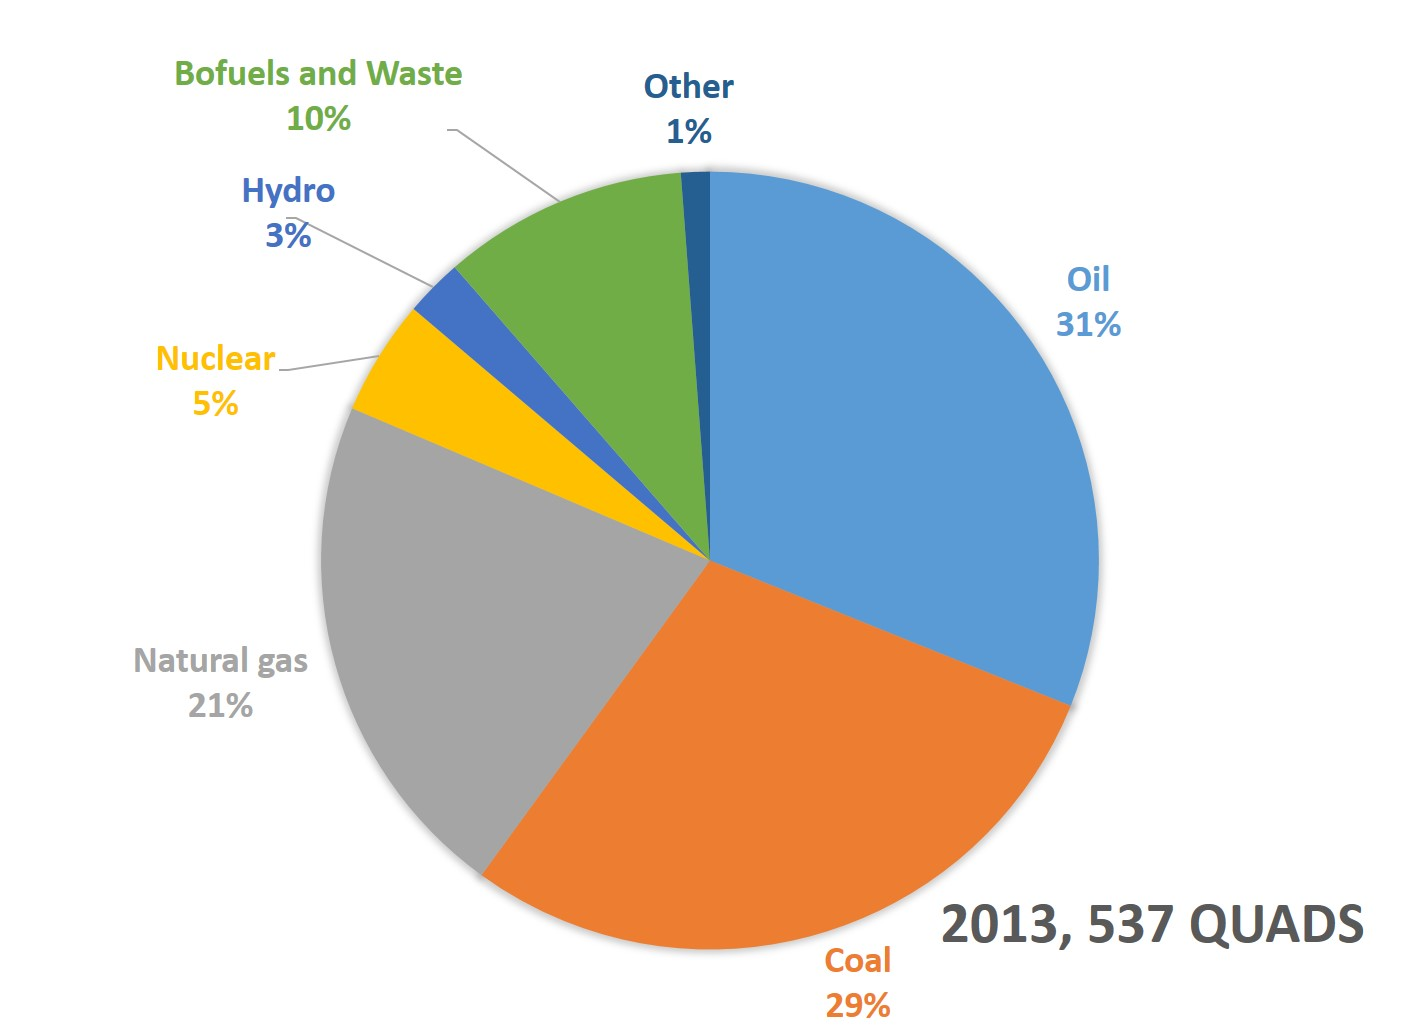 Is Shale Gas the Future Energy Source?